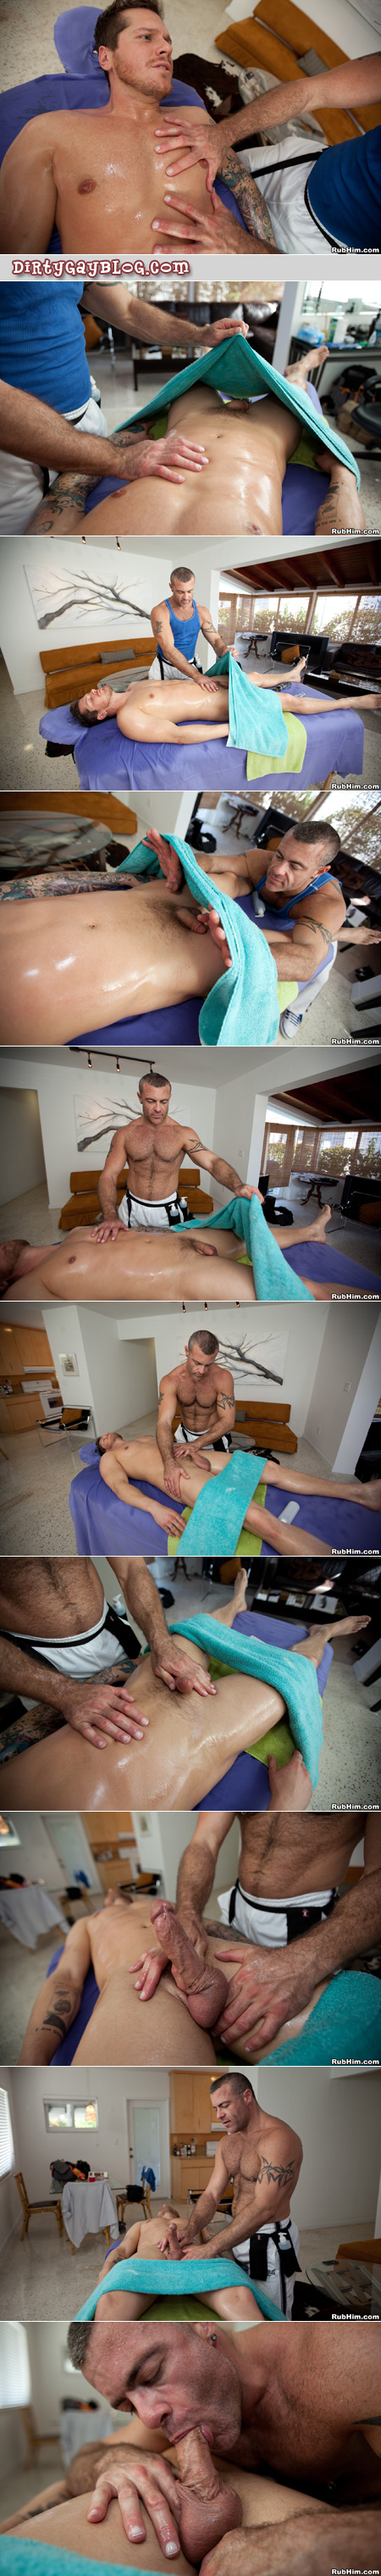 Hairy, muscular masseur takes liberties with his male massage clients.